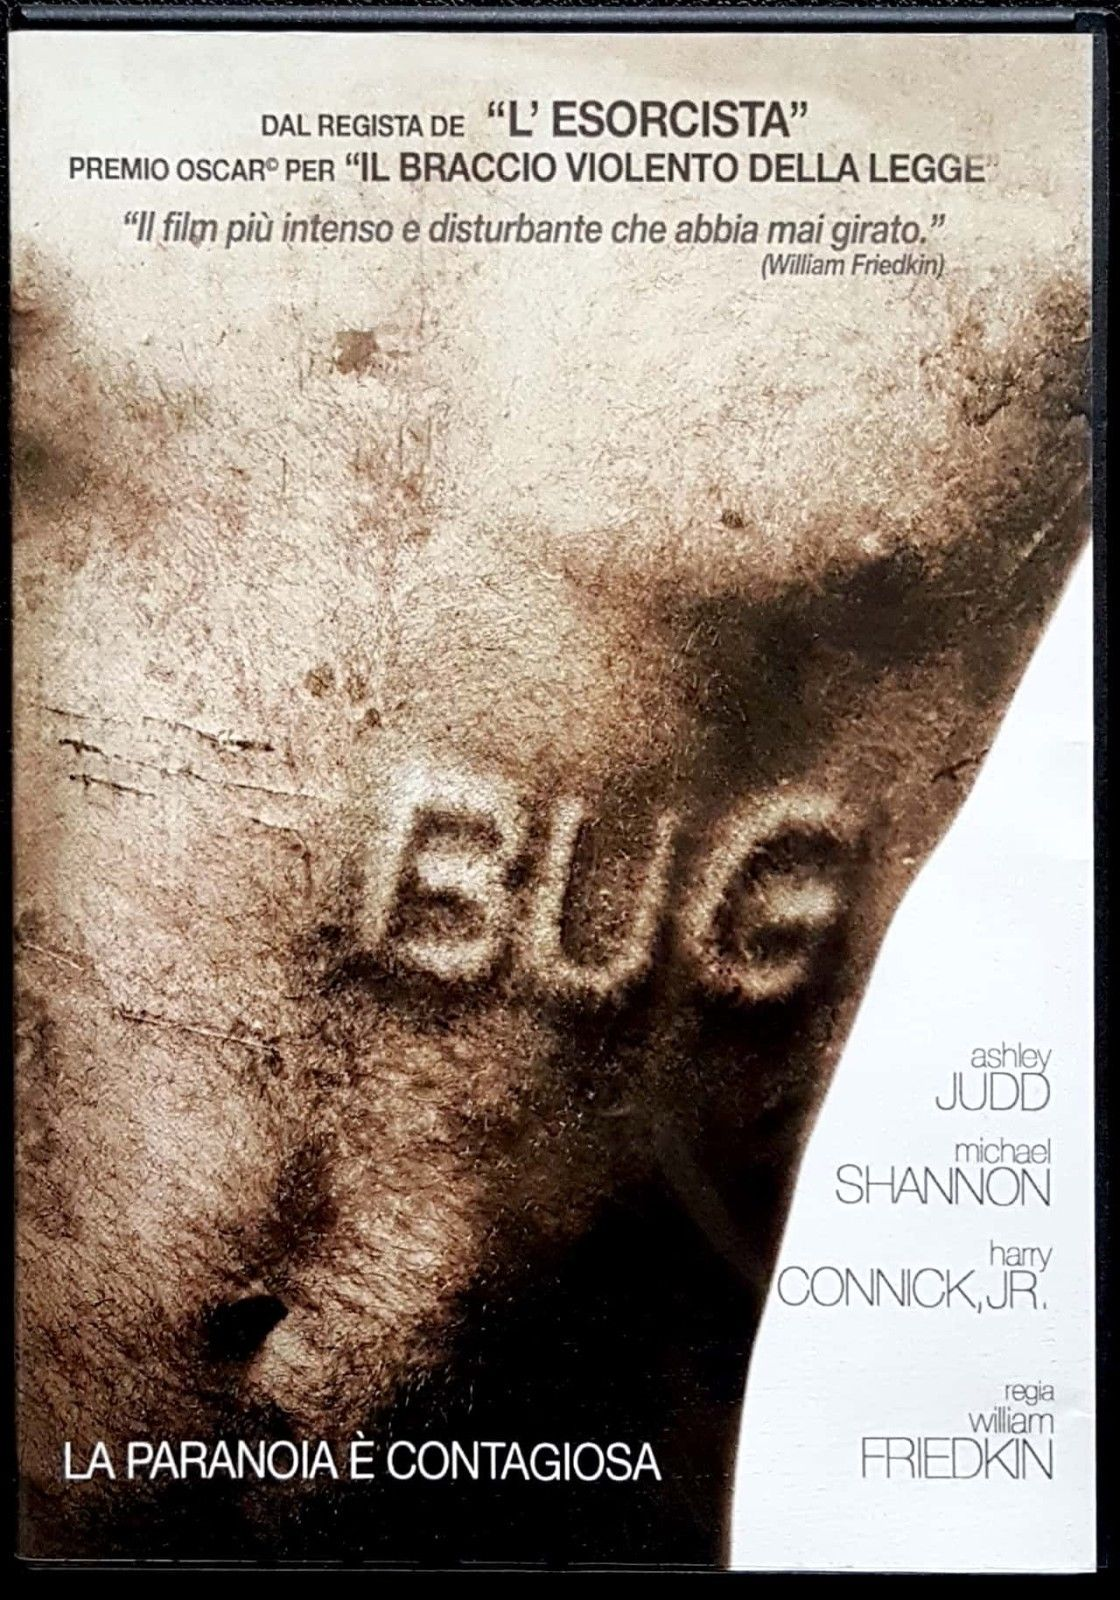 Ashley JUDD& William Friedkin: Bug (Incerto Cinema3)